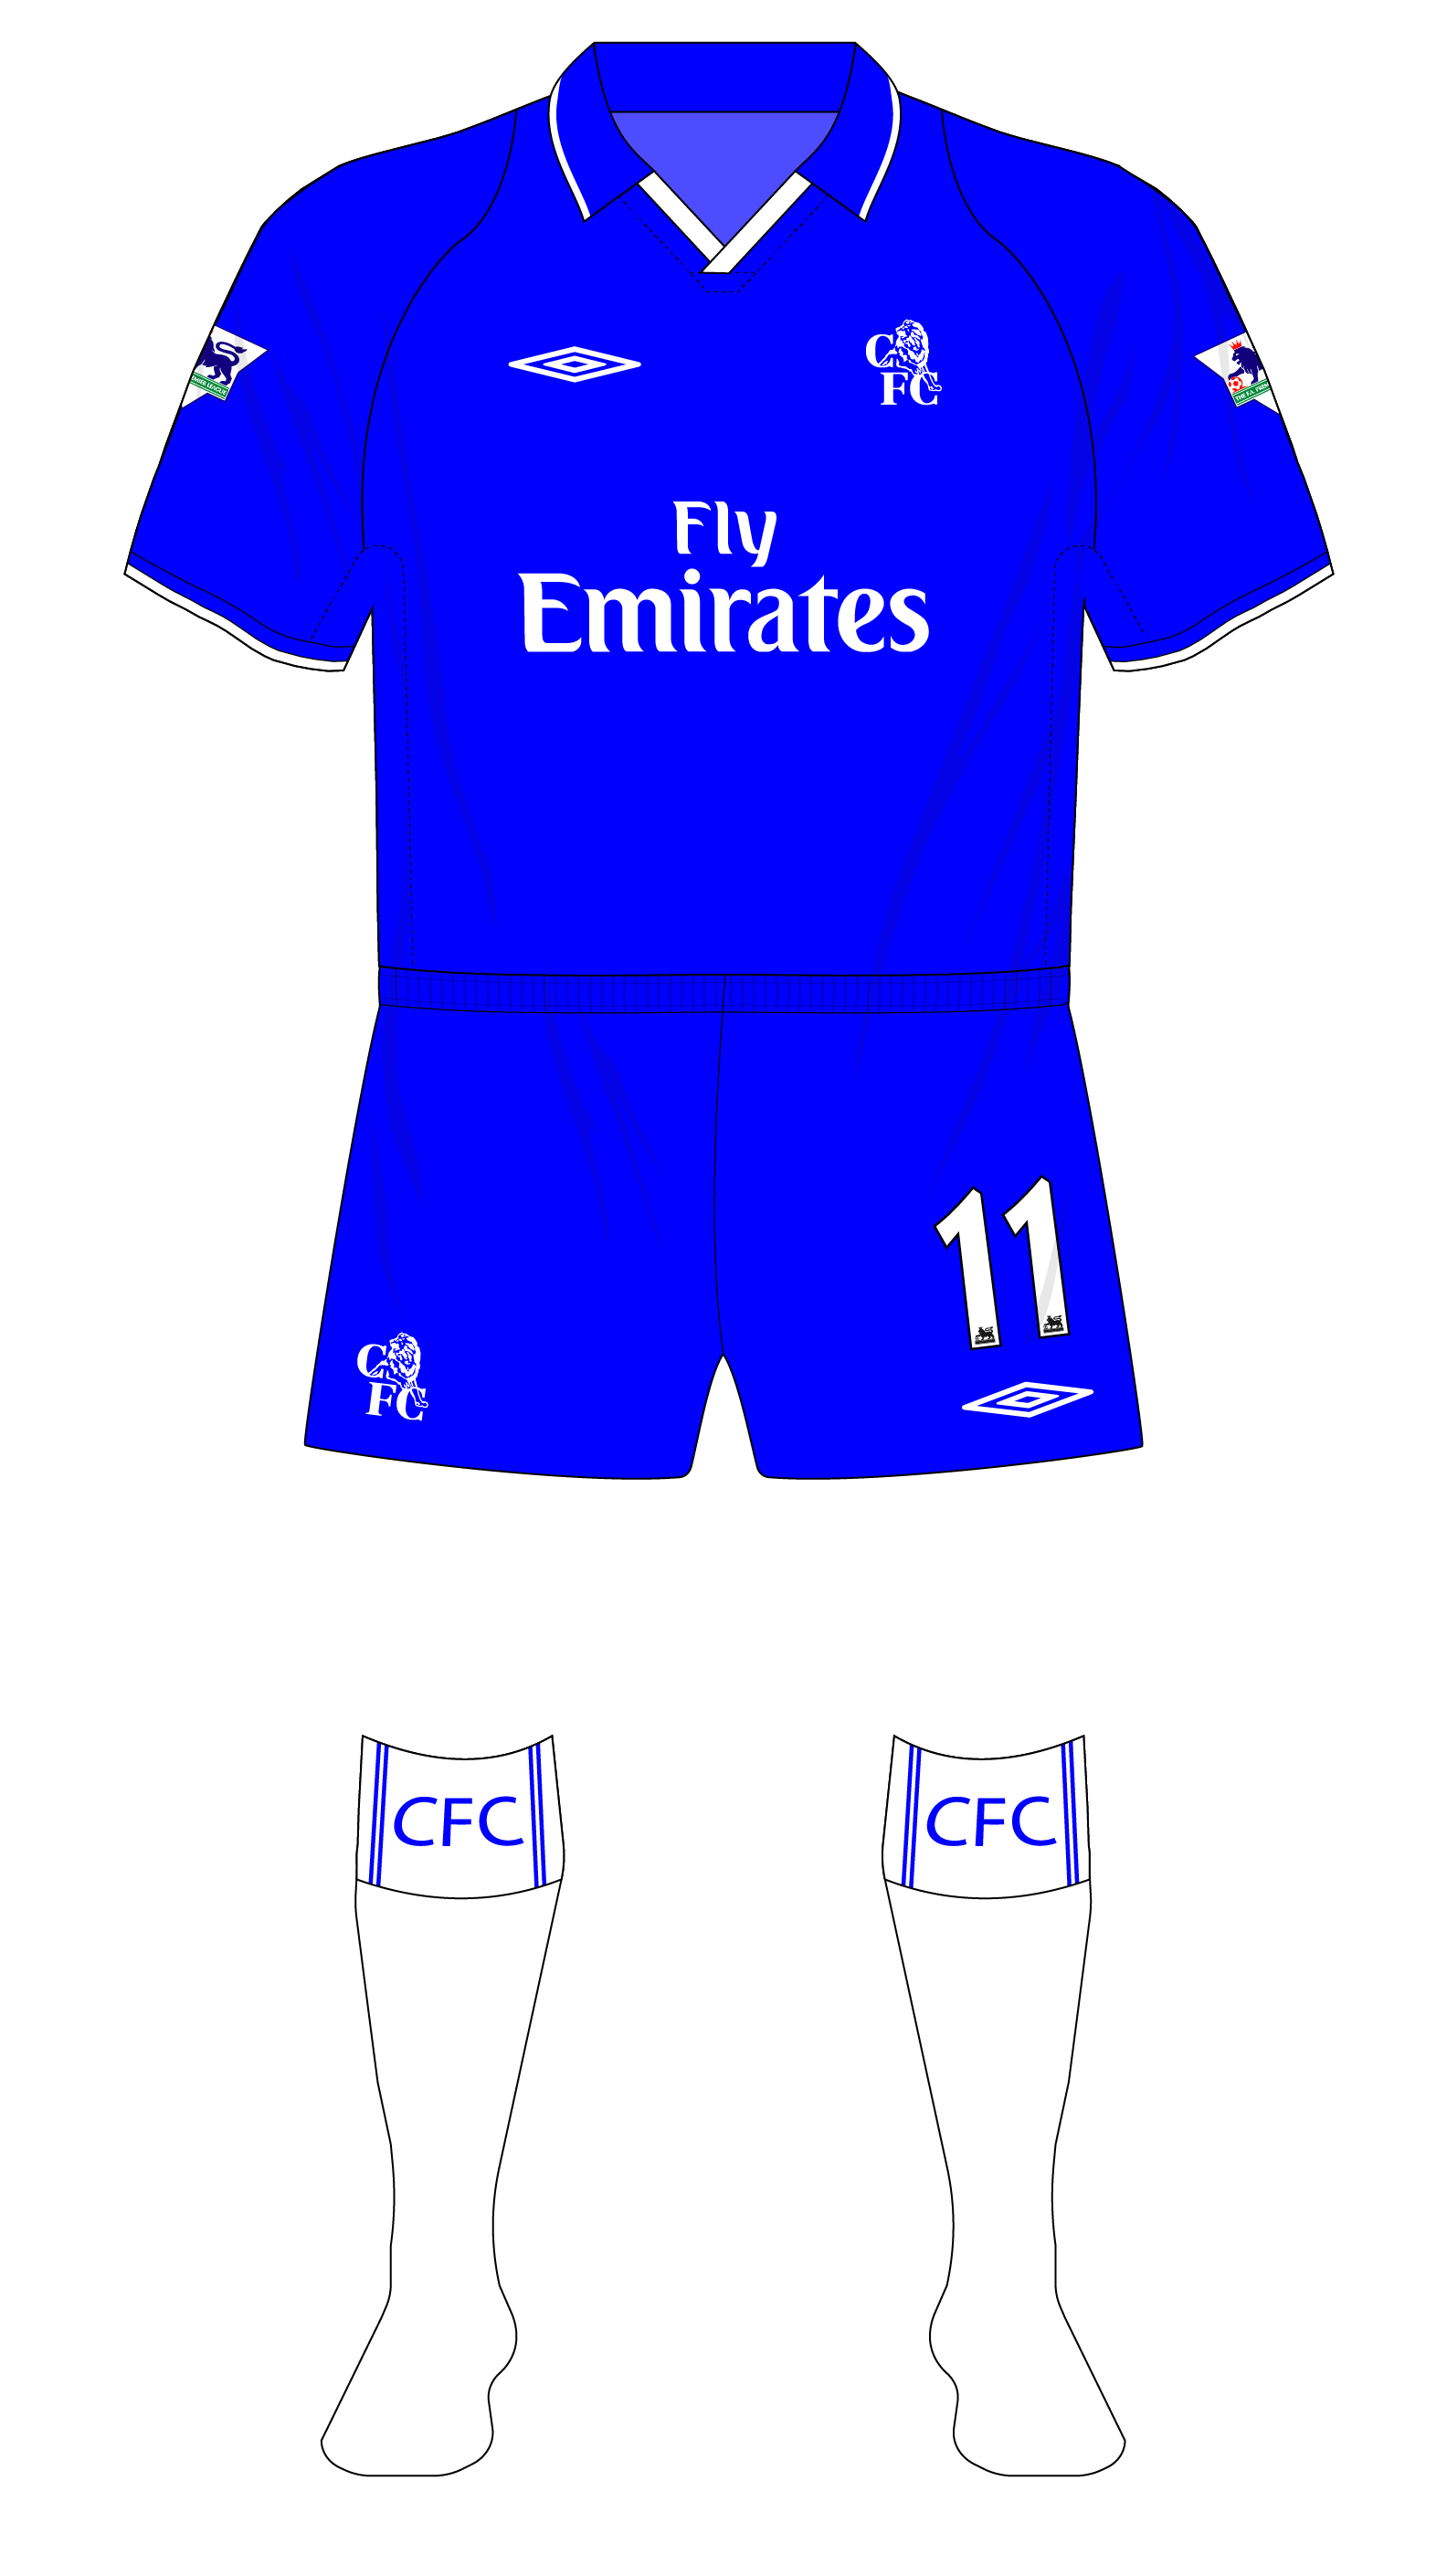 purchase cheap a0445 0d7e2 Chelsea-2001-2003-Umbro-home-kit-shirt-01 – Museum of Jerseys